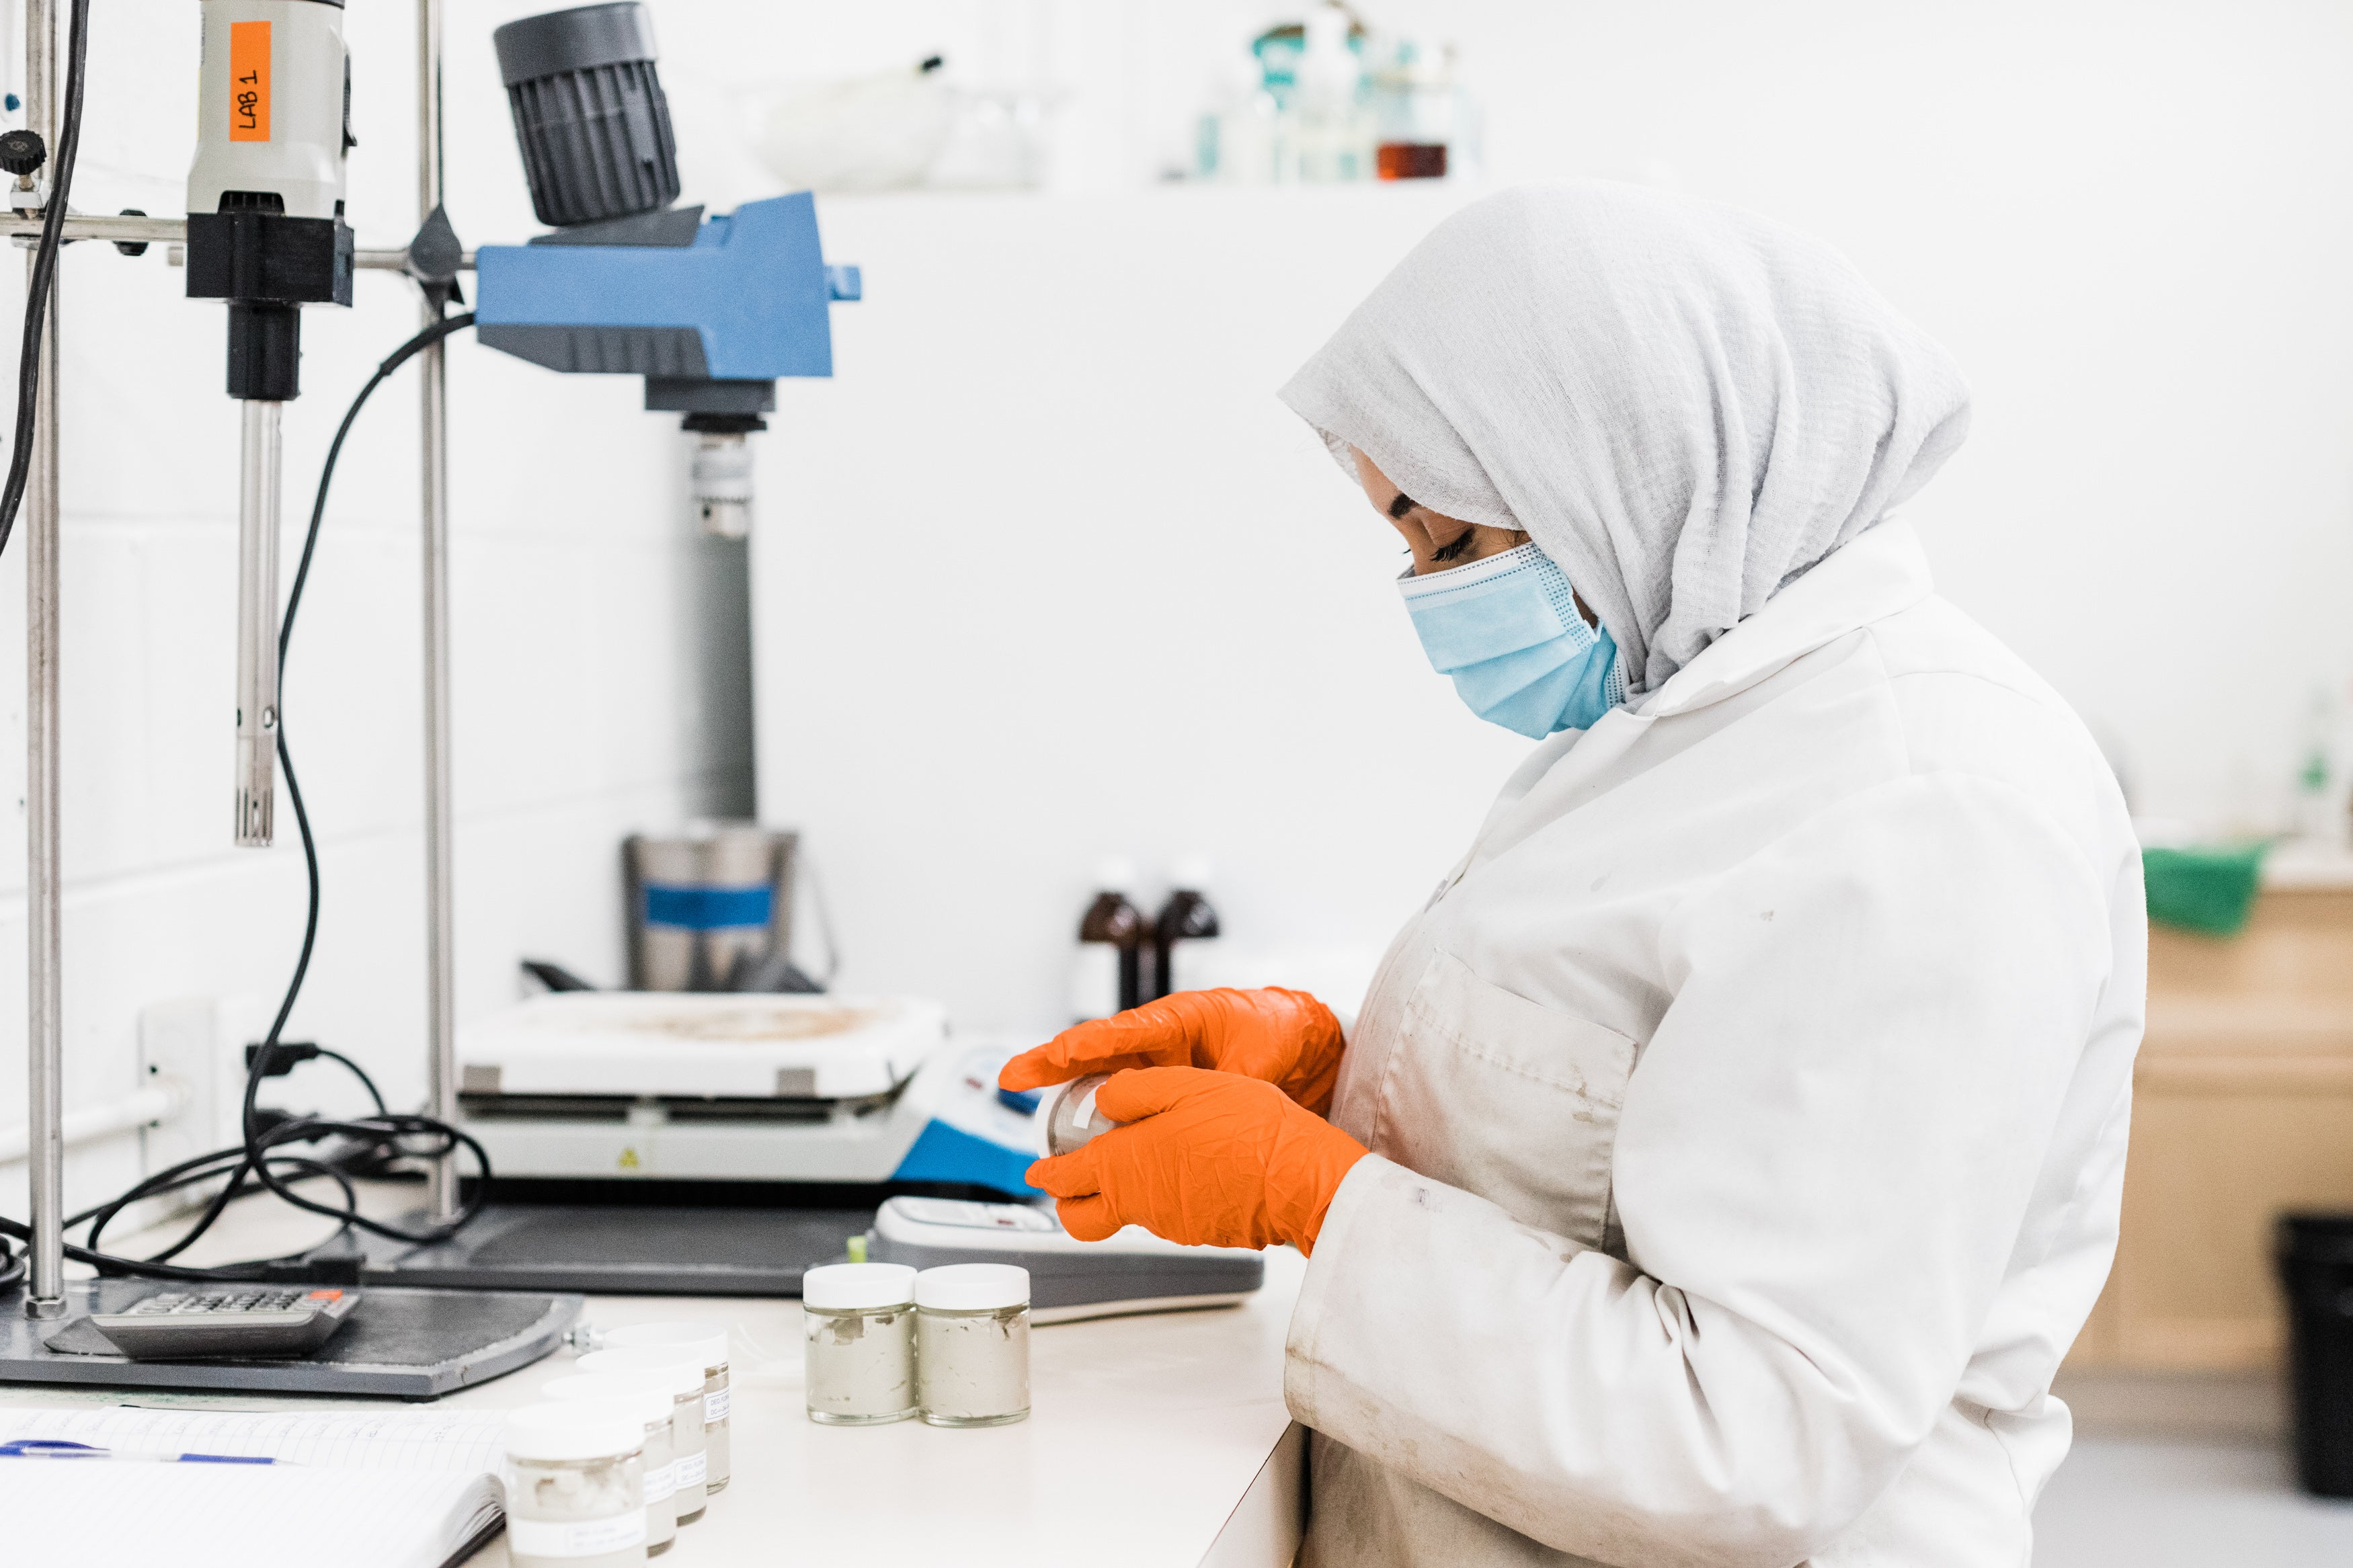 Image of woman wearing a hijab working in lab.